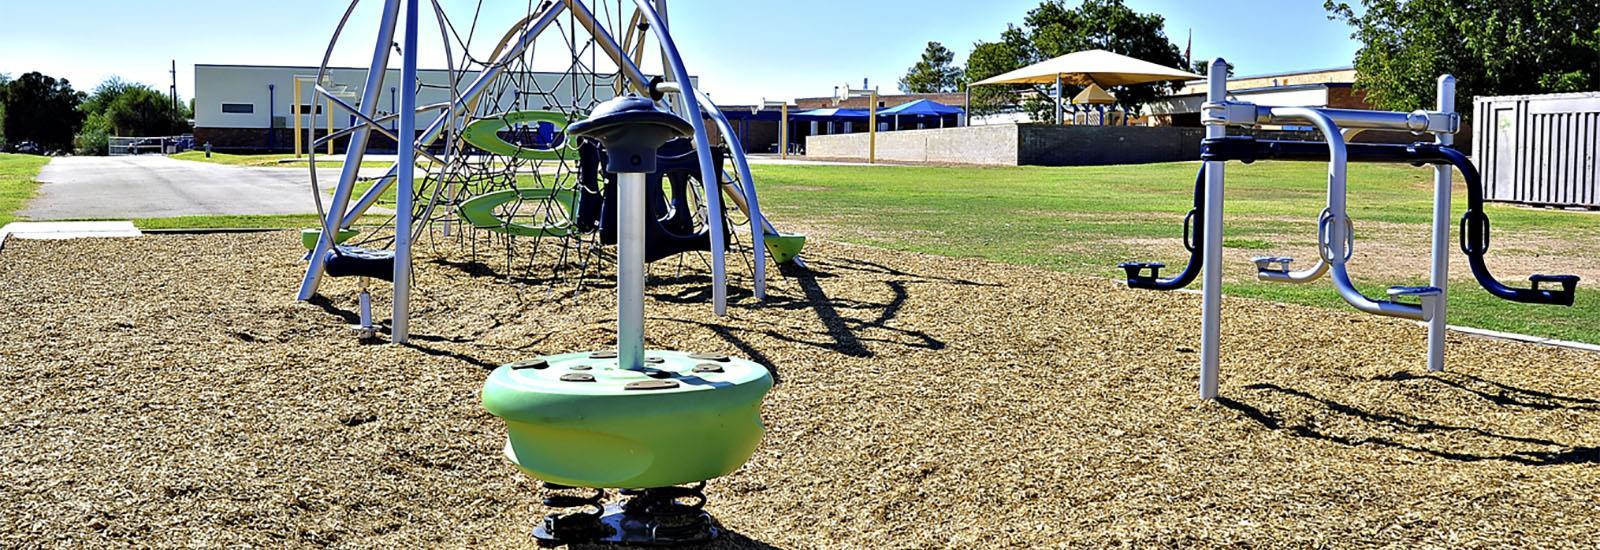 Our Playground features new equipment.